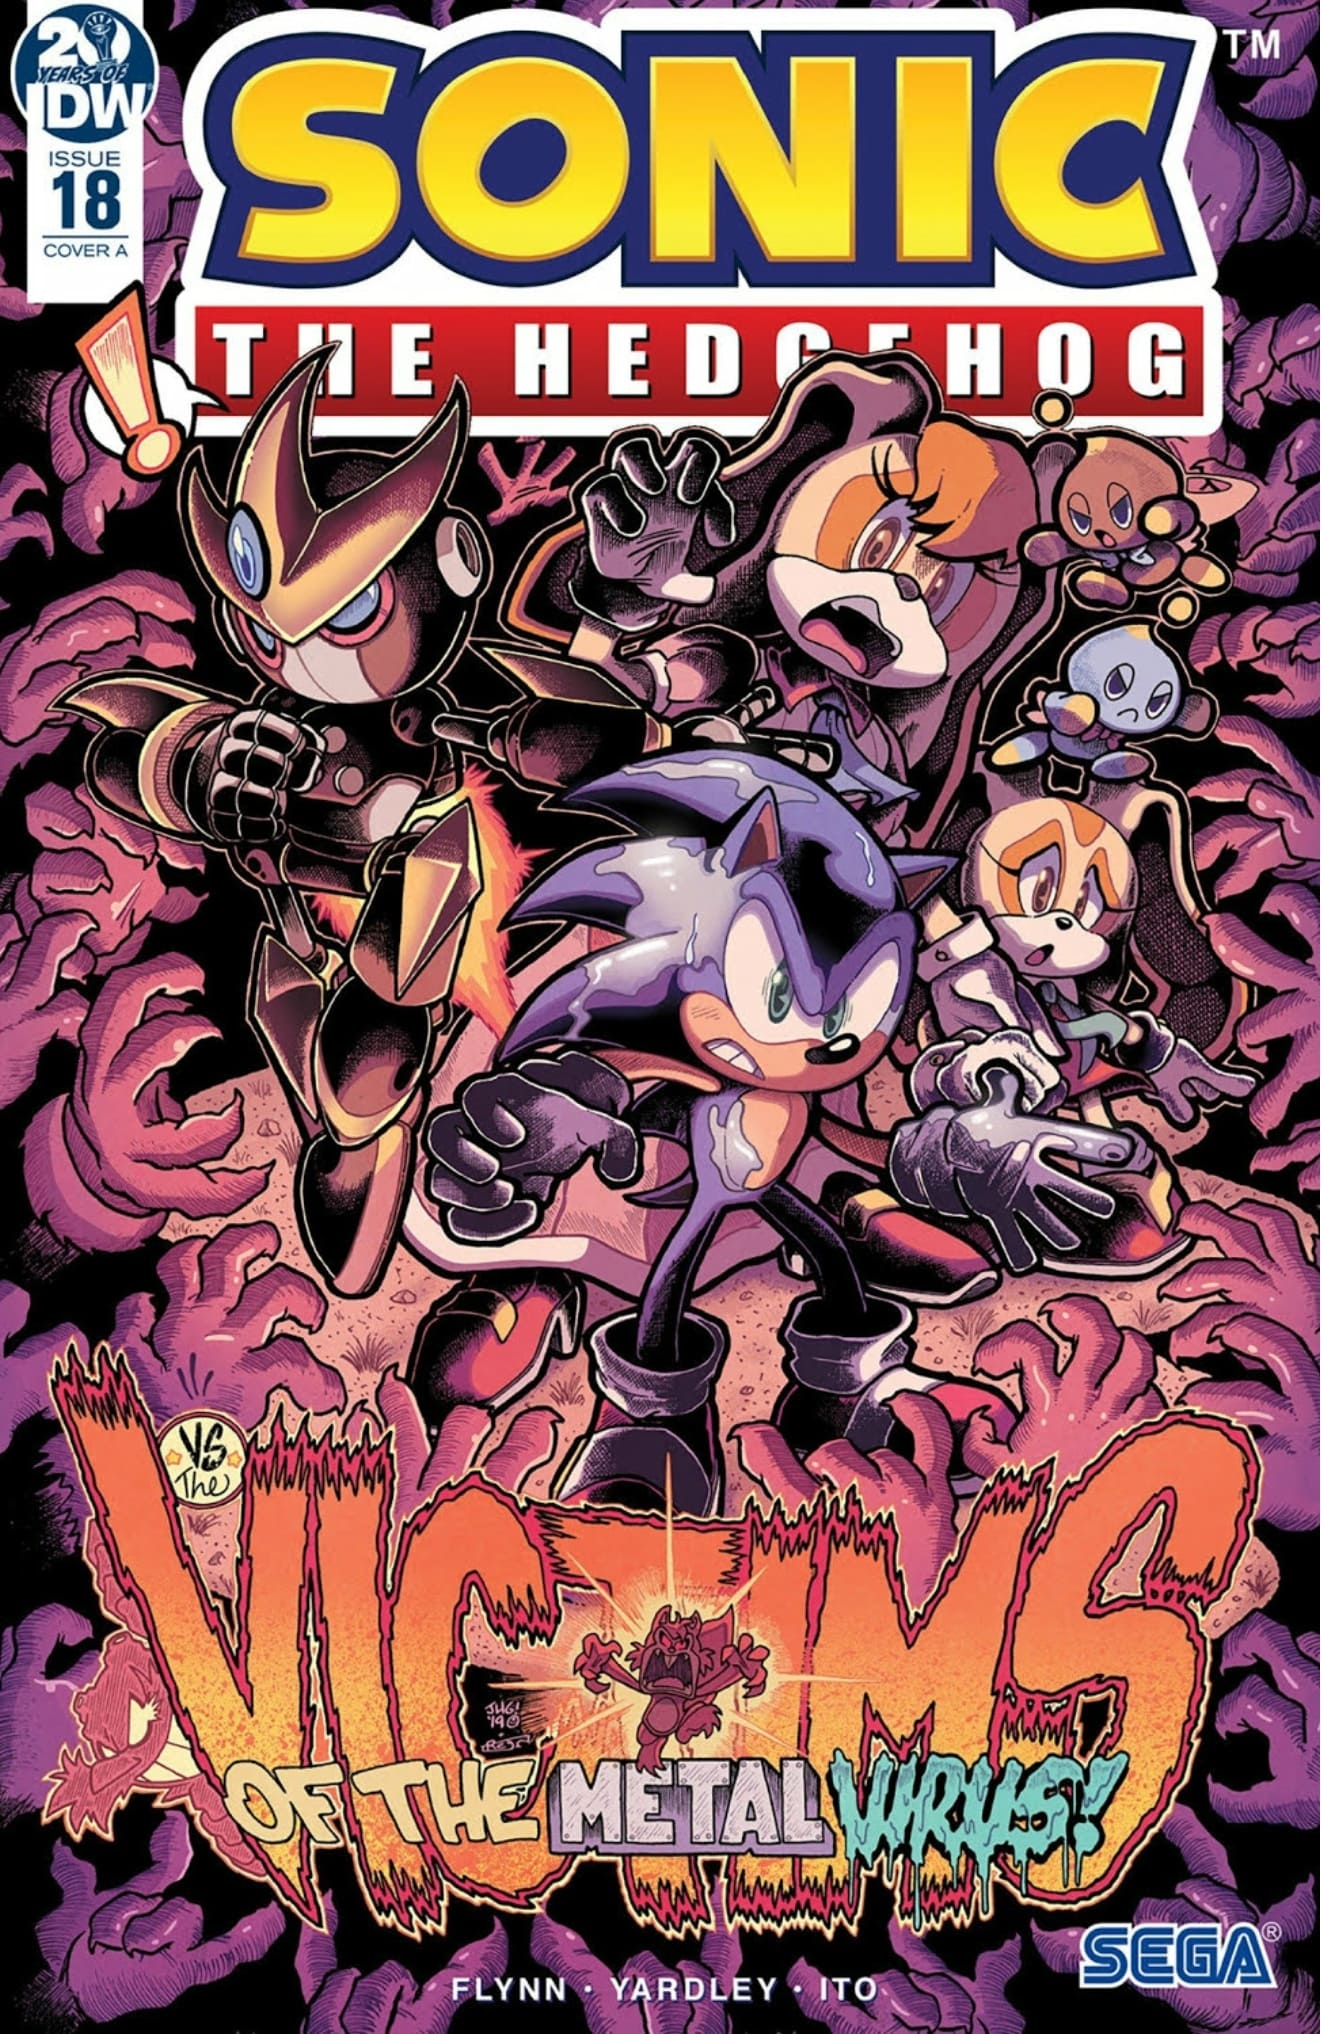 Sonic The Hedgehog #18 Cover A